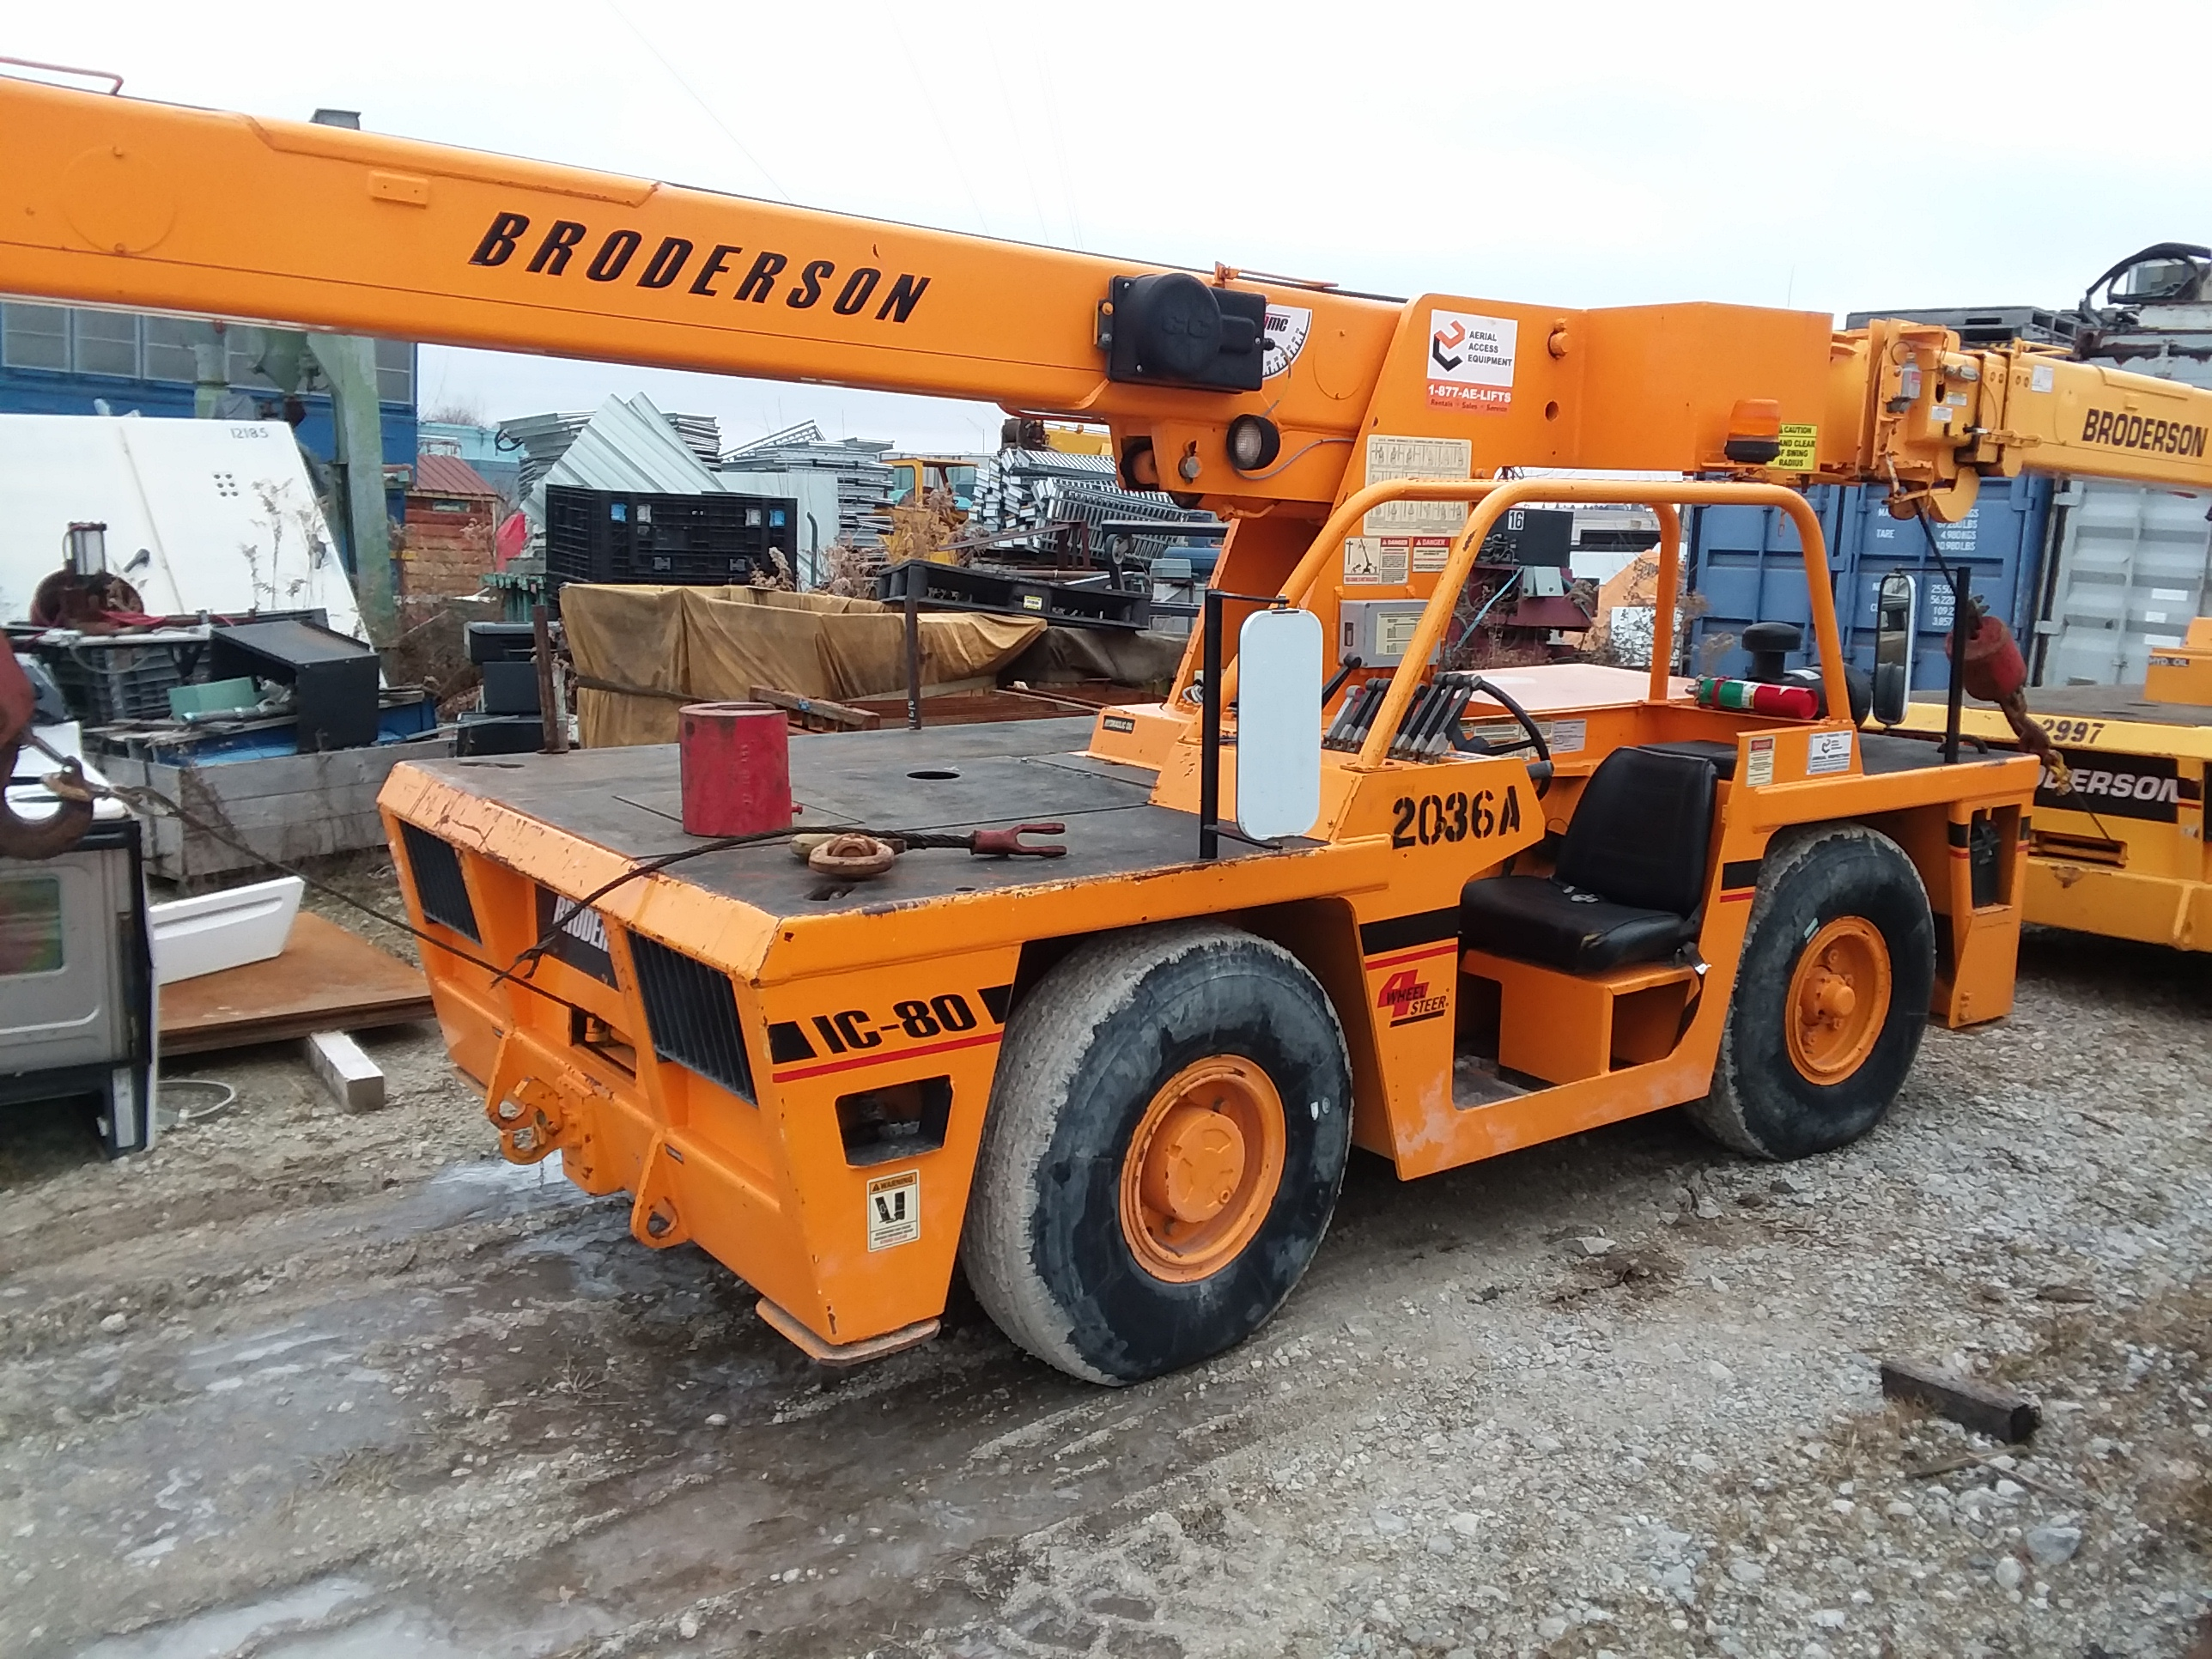 1 - PREOWNED BRODERSON CARRY DECK CRANE, MODEL #: IC-80-3G, <br>S/N: 552036, YEAR: 2006